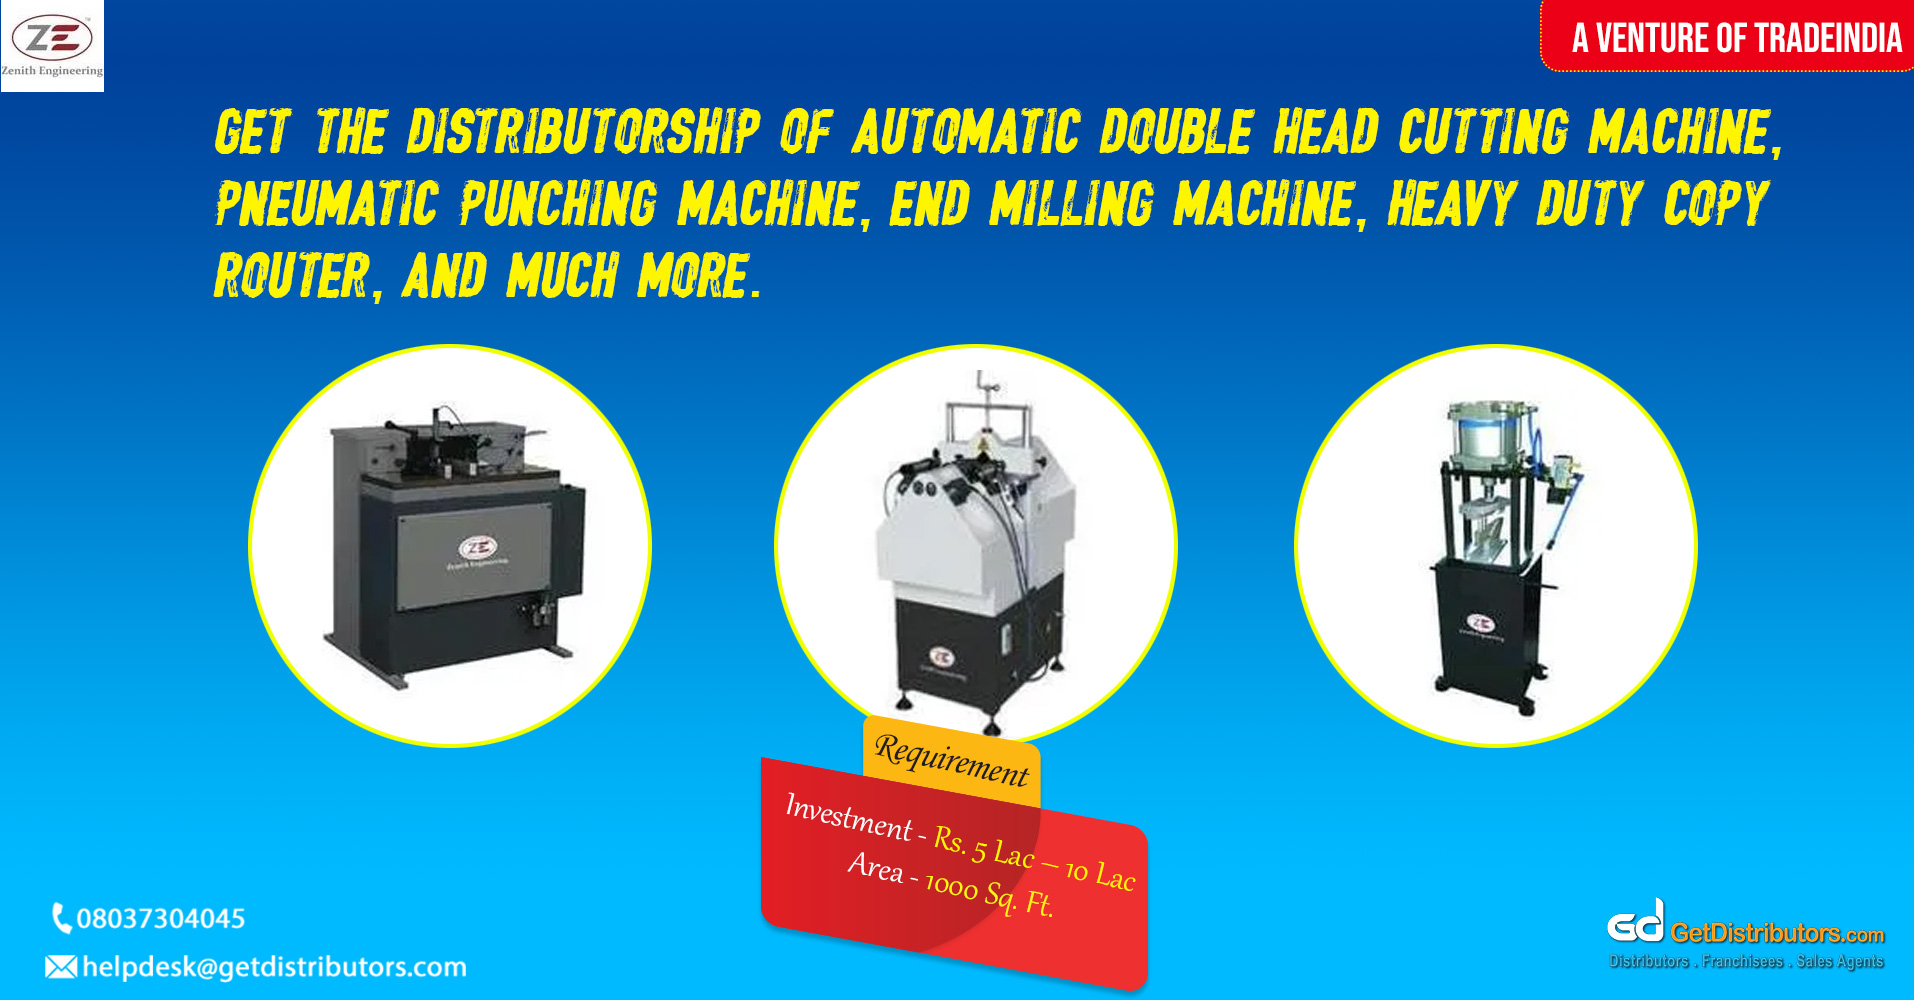 Highly efficient machinery that is maintenance free